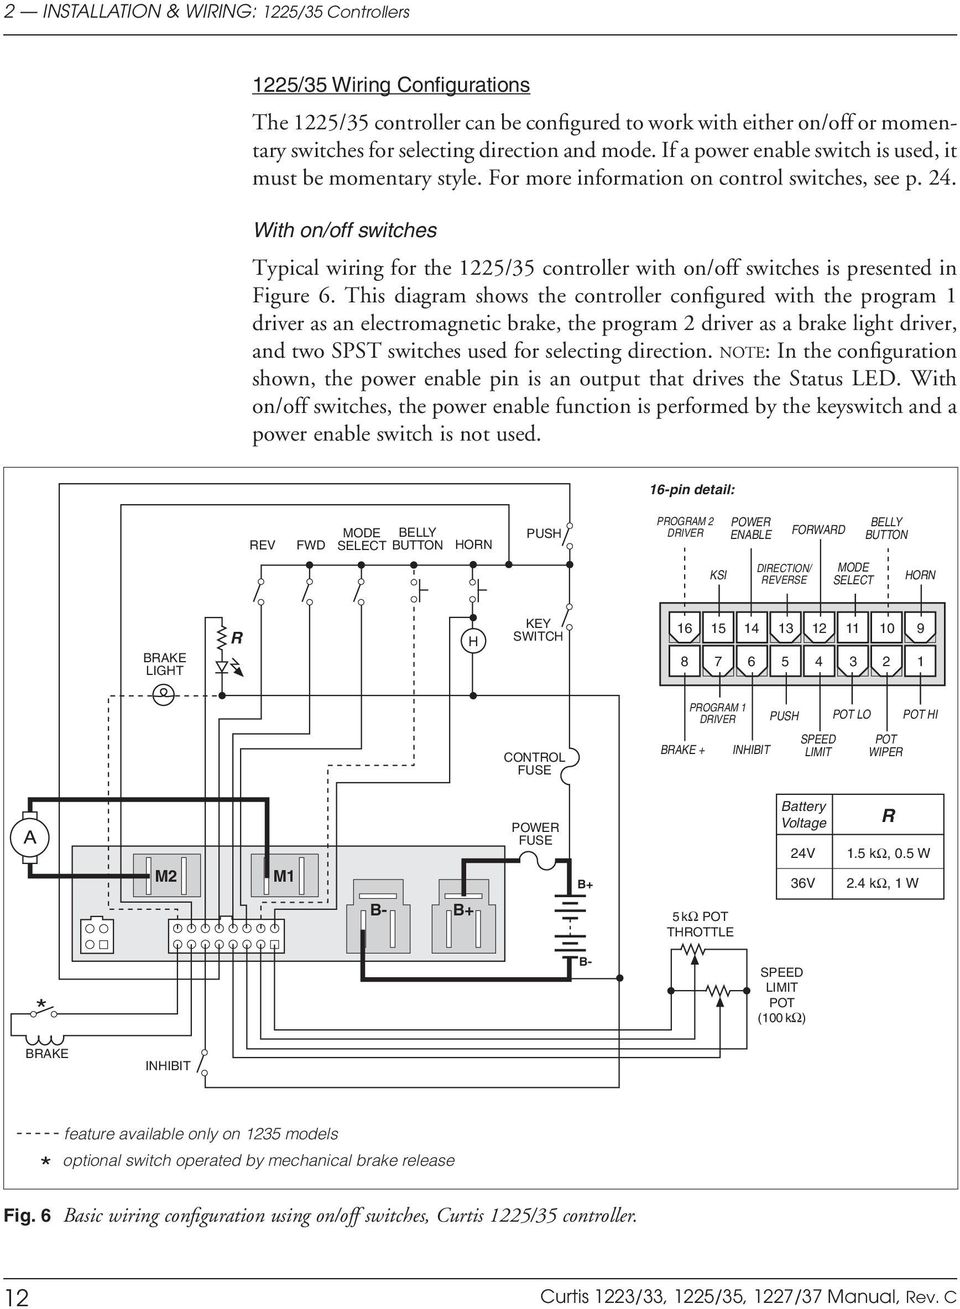 Curtis Controller Wiring Diagram from docplayer.net